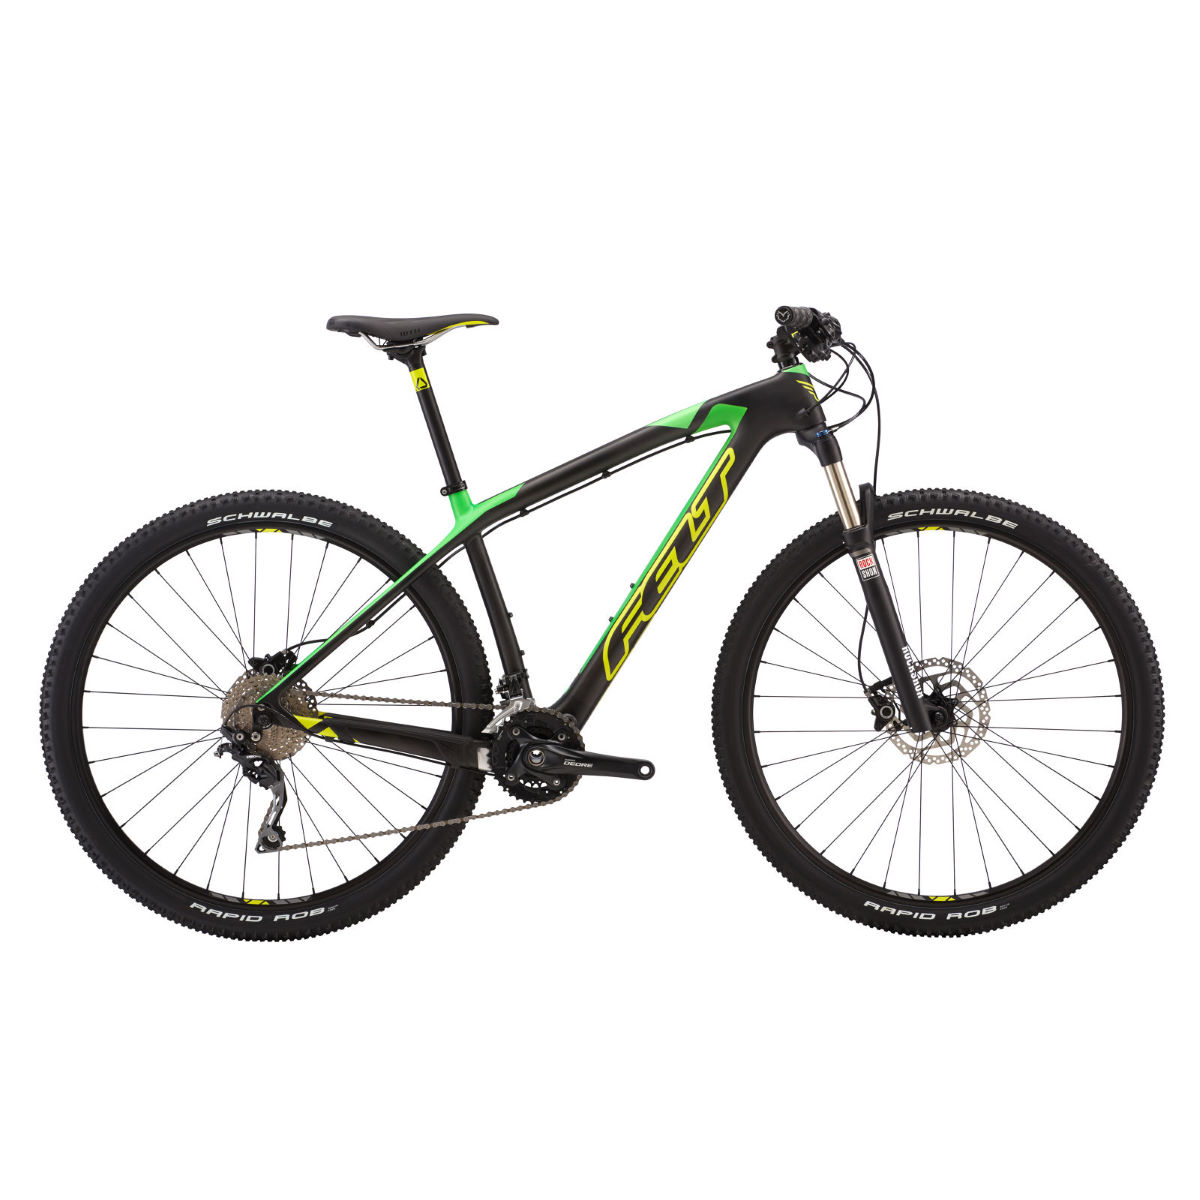 VTT Felt Nine 5 (2016) - 14'' Carbon/Green VTT semi-rigides